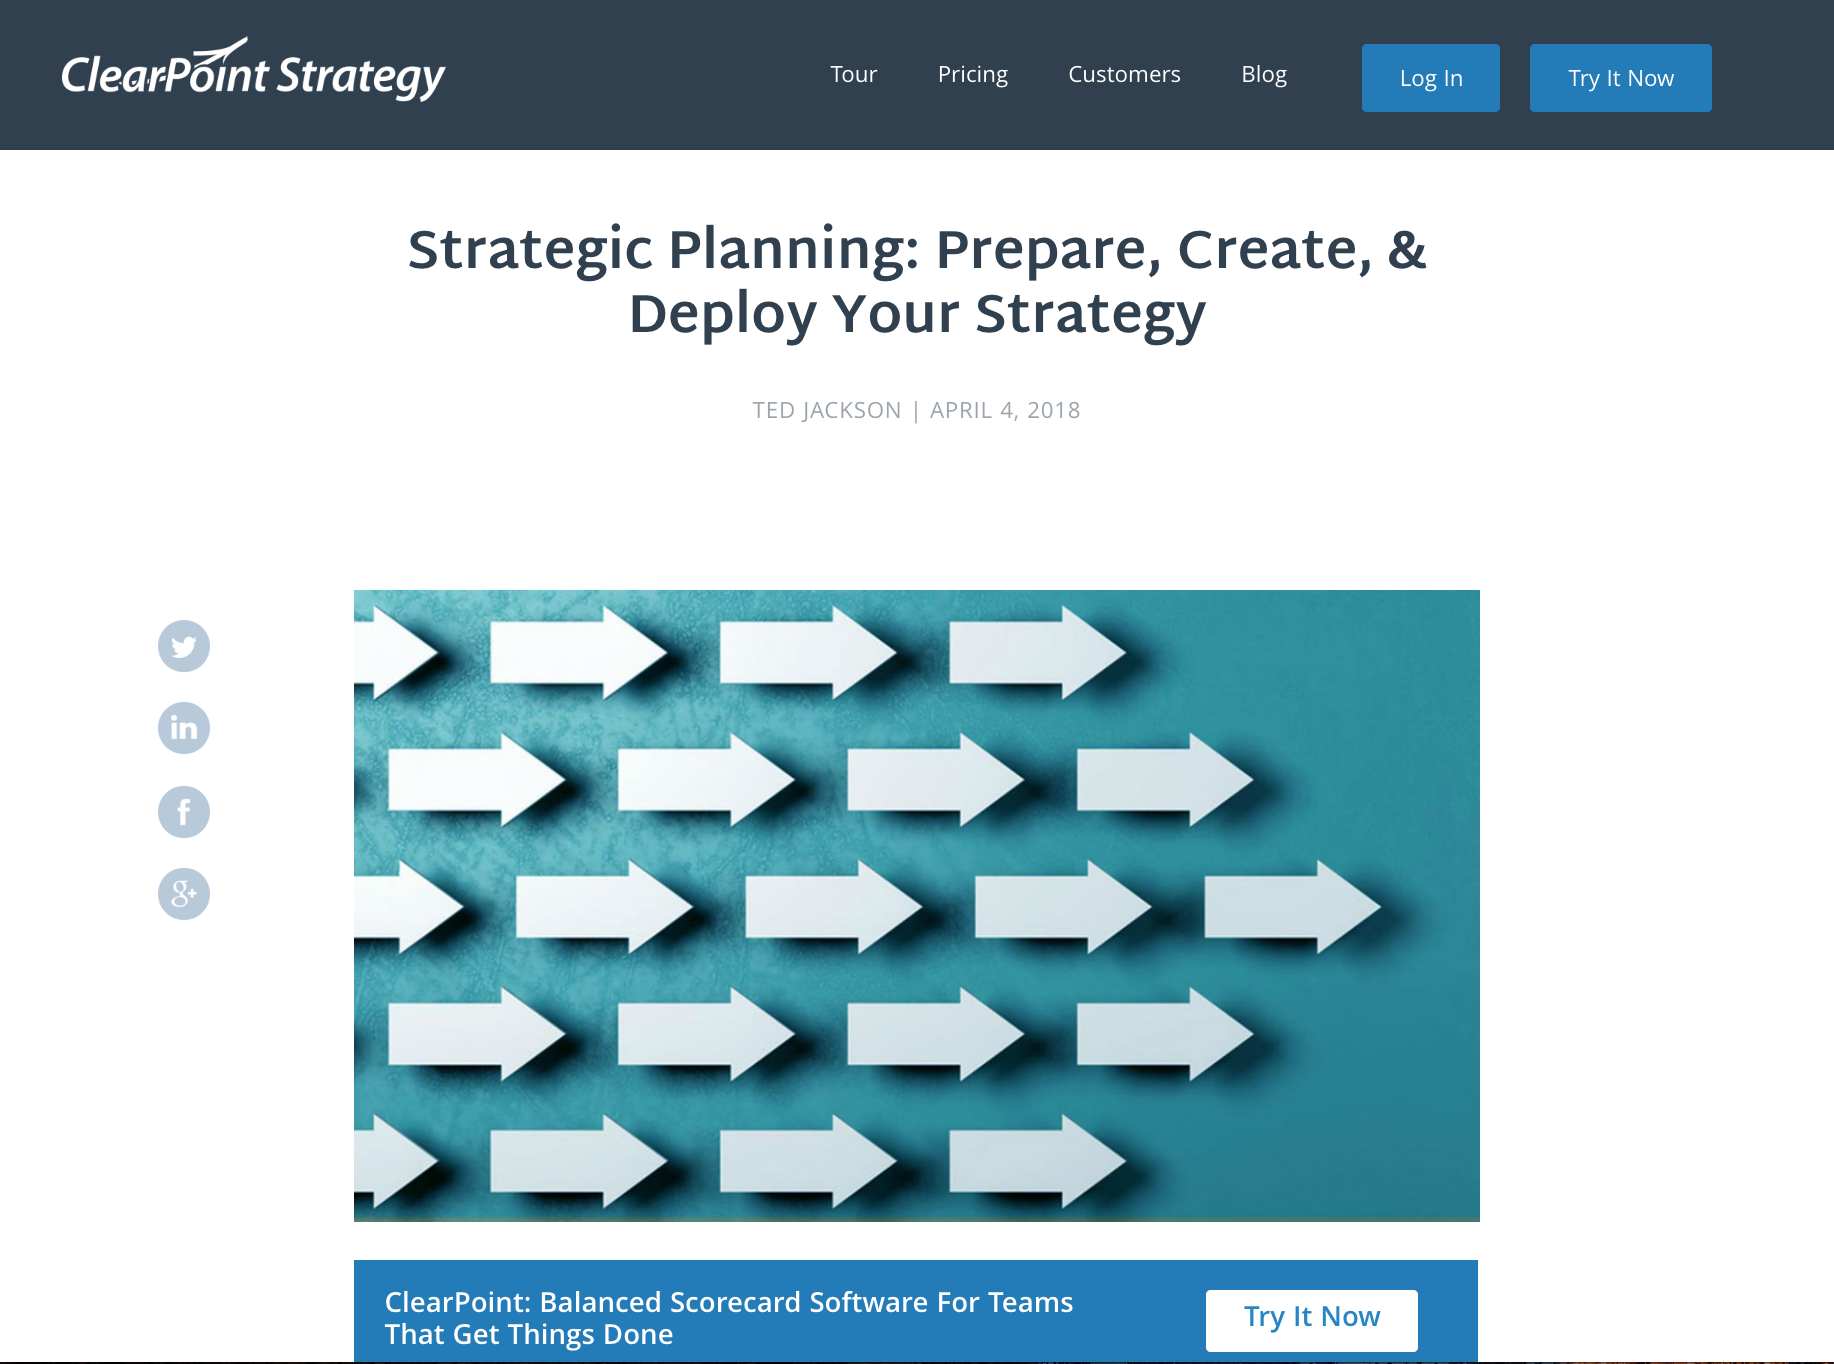 Strategic Planning: Prepare, Create, & Deploy Your Strategy